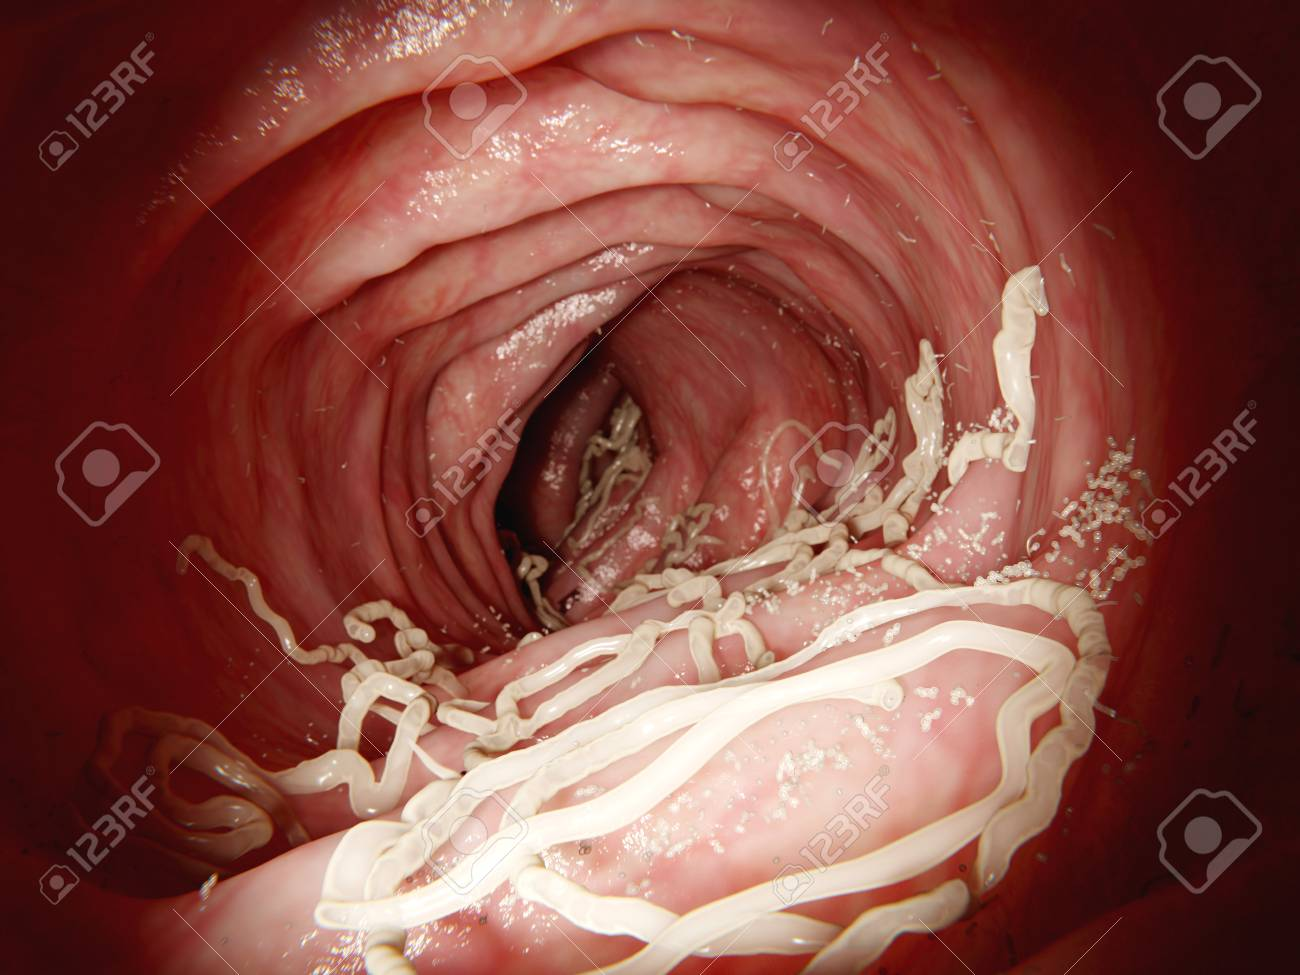 Large Roundworm In Human Intestine The Large Roundworm A Stock